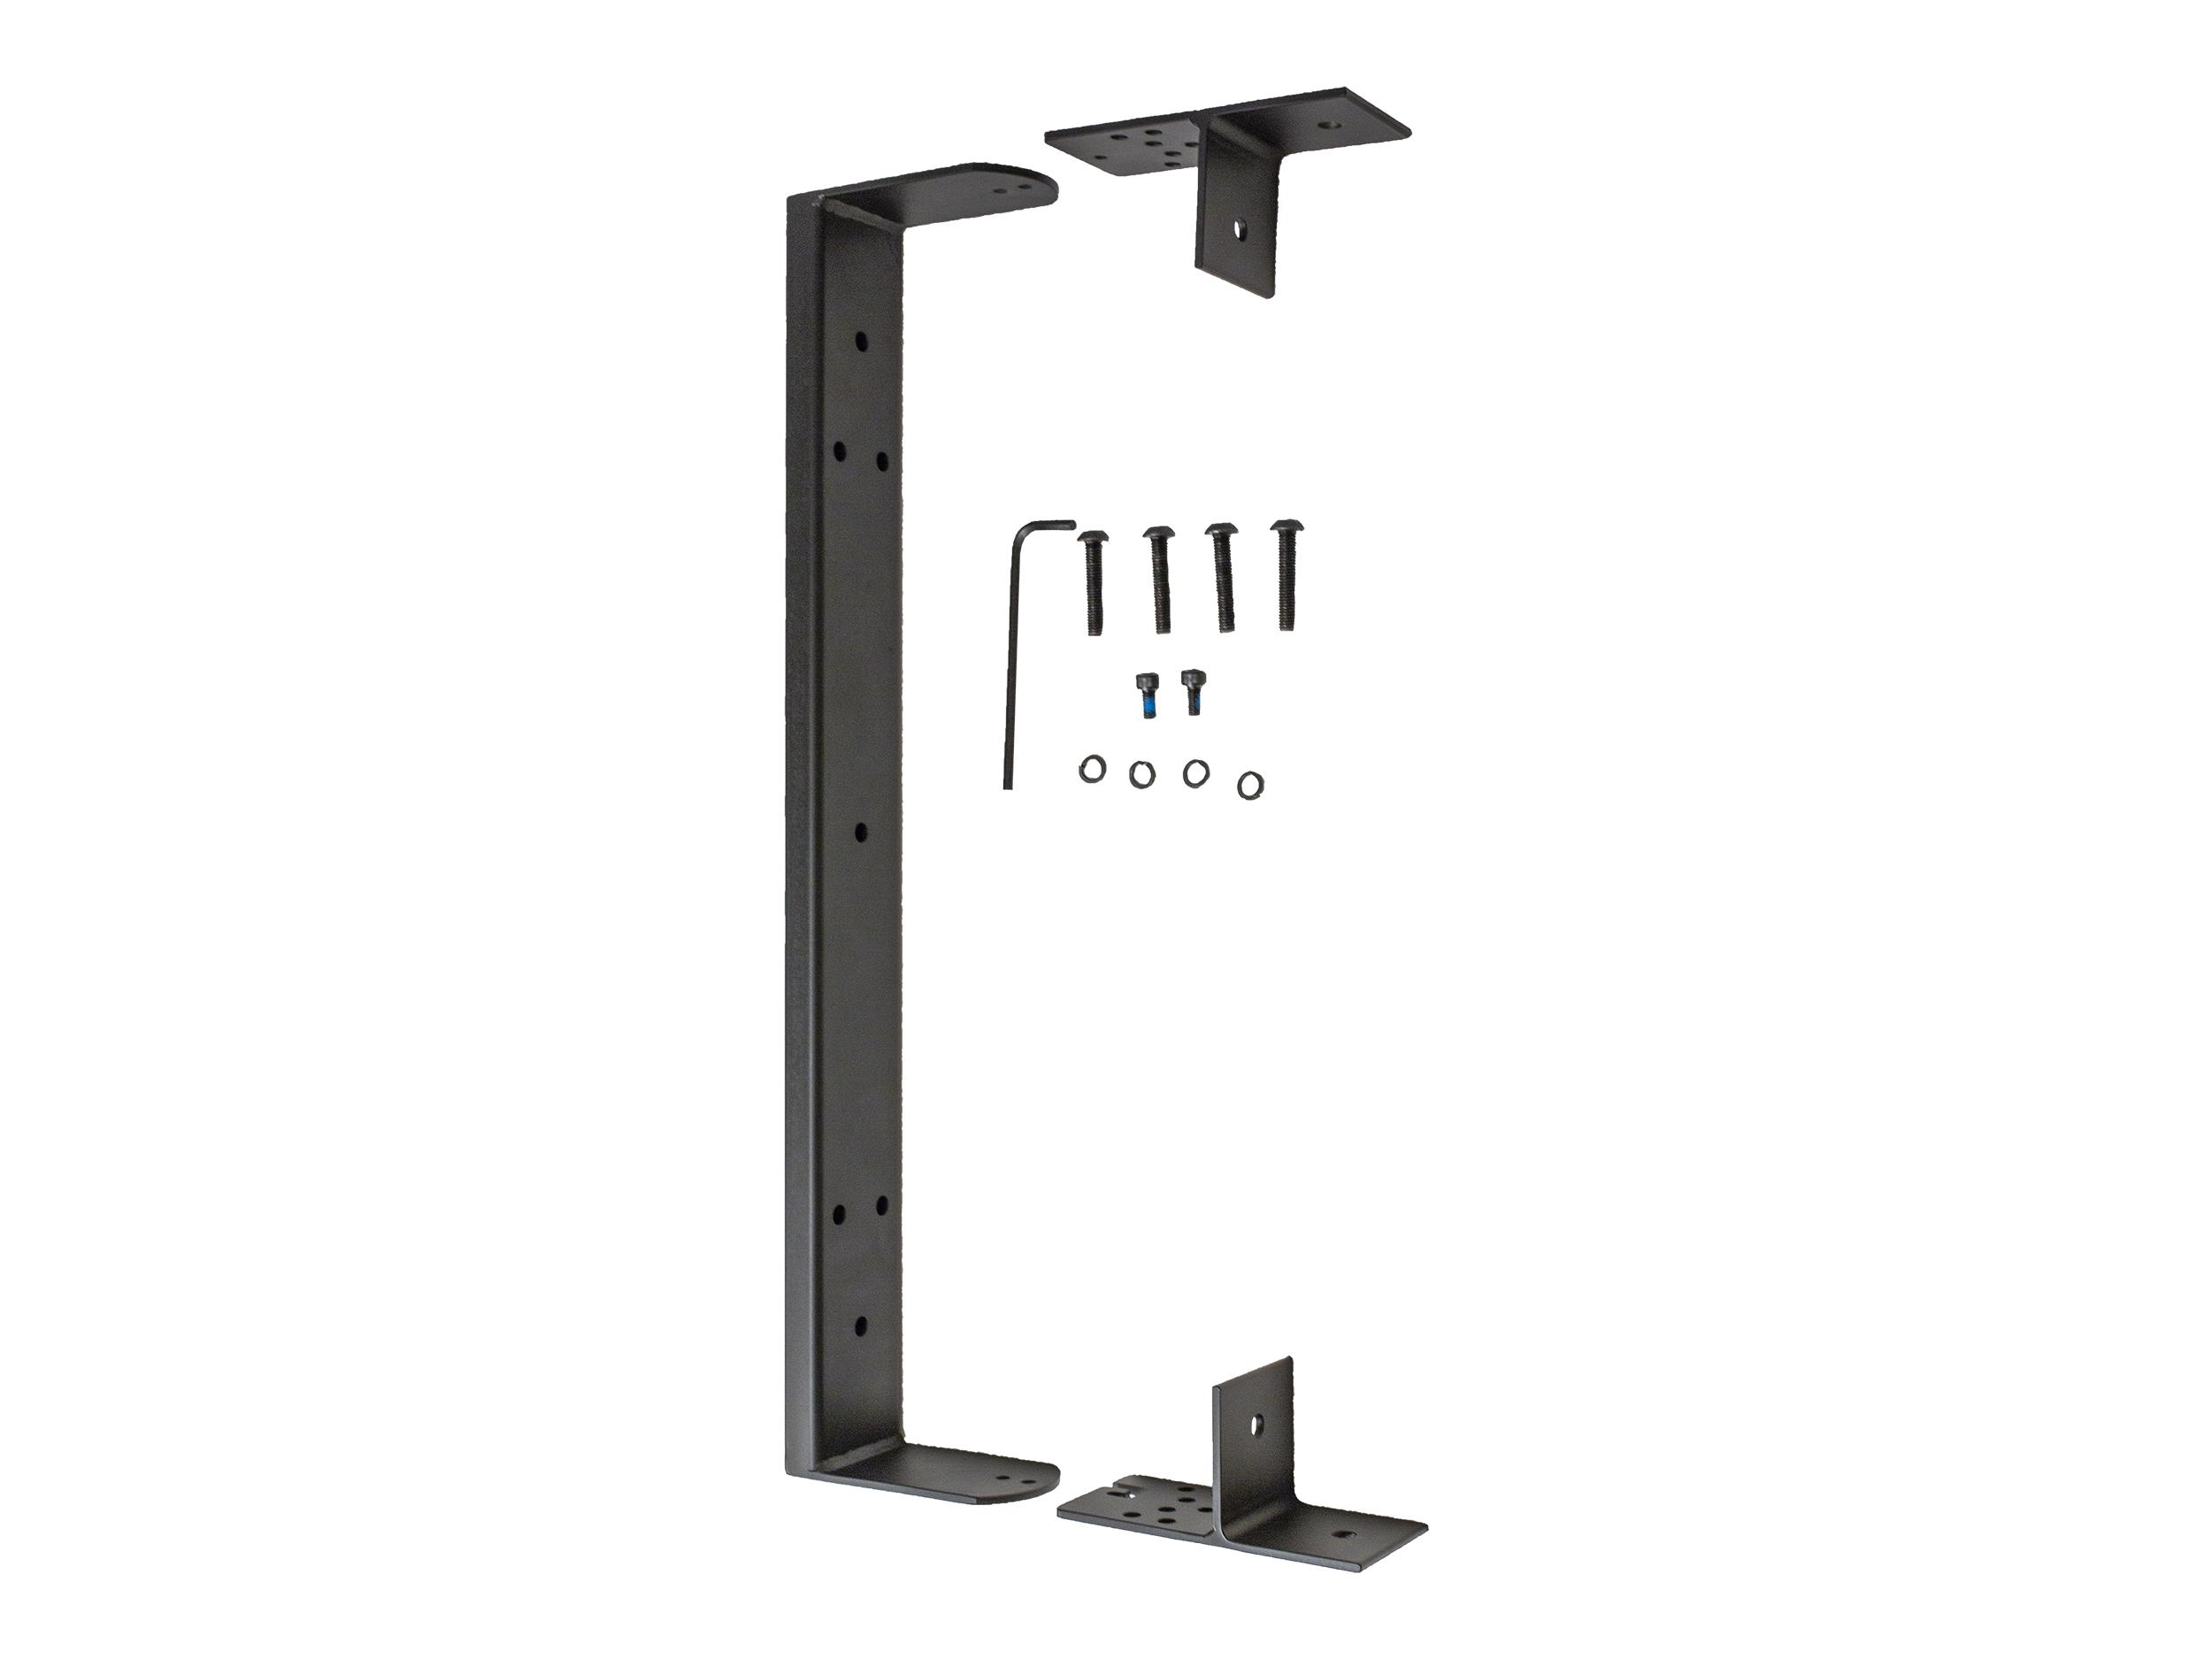 ETXBRKT12 Wall Mount Bracket for ETX-12P by Electro-Voice